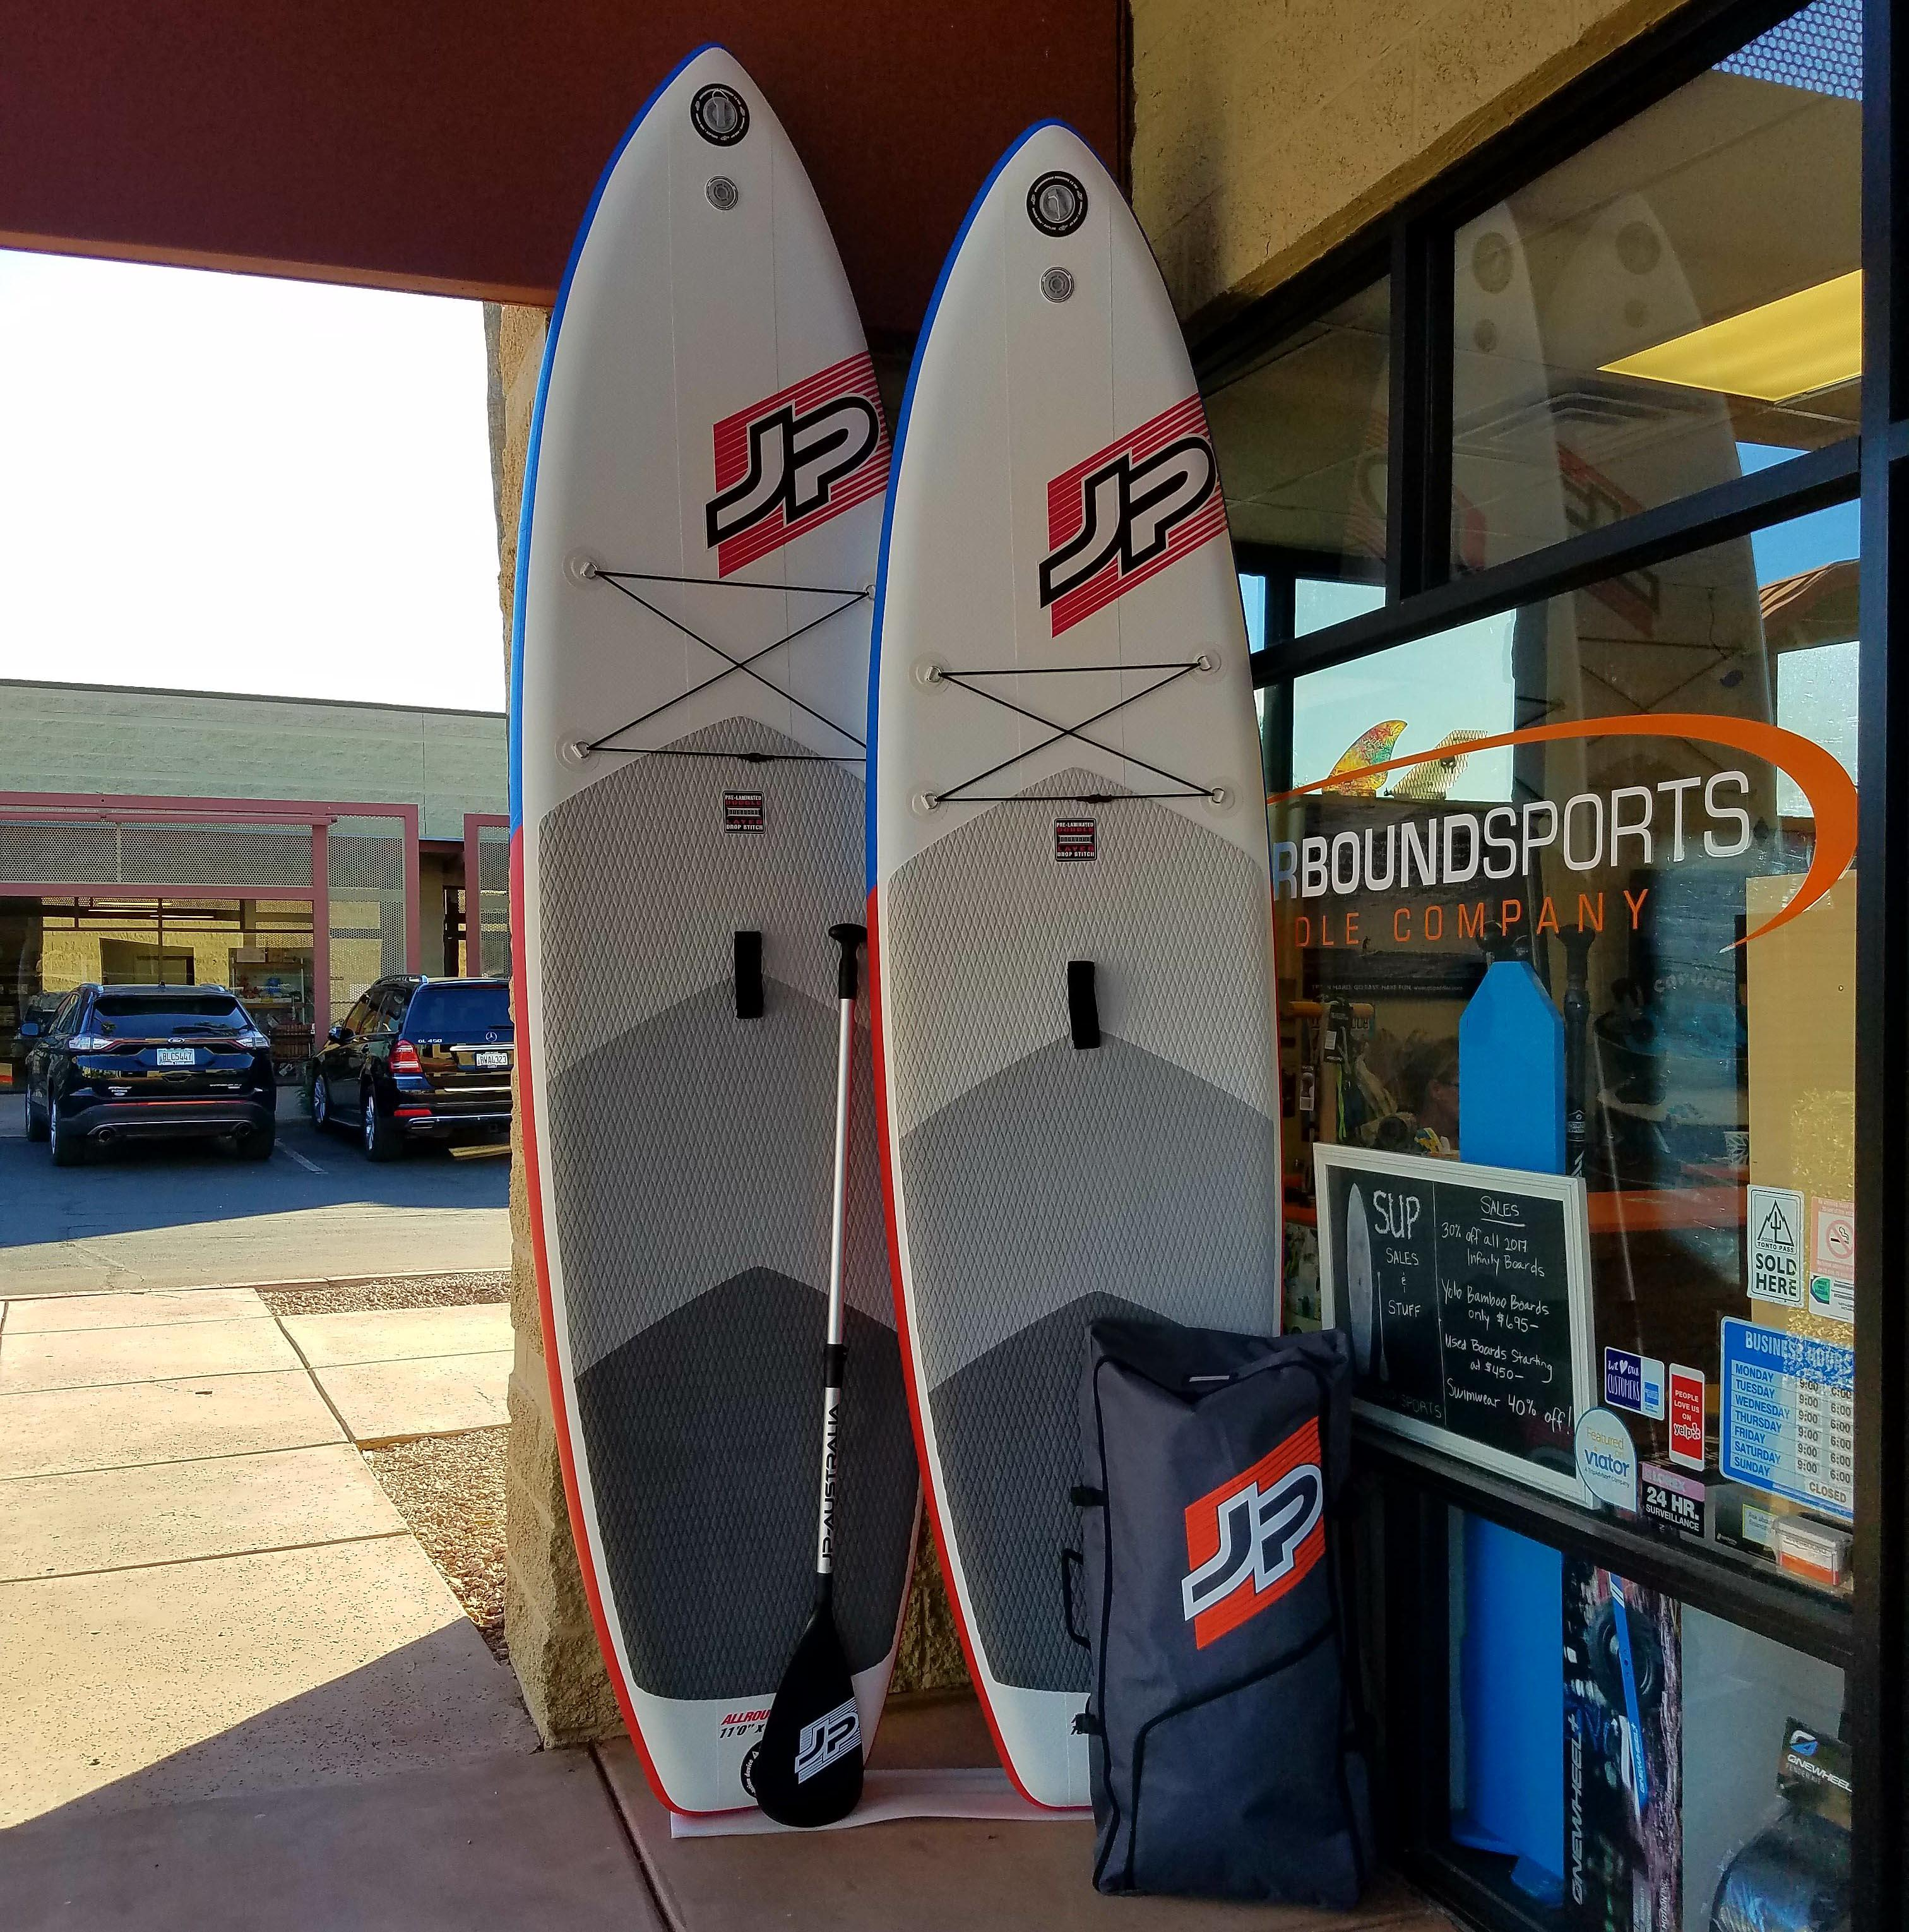 Riverbound Sports Stand Up Paddleboard Shop image 3